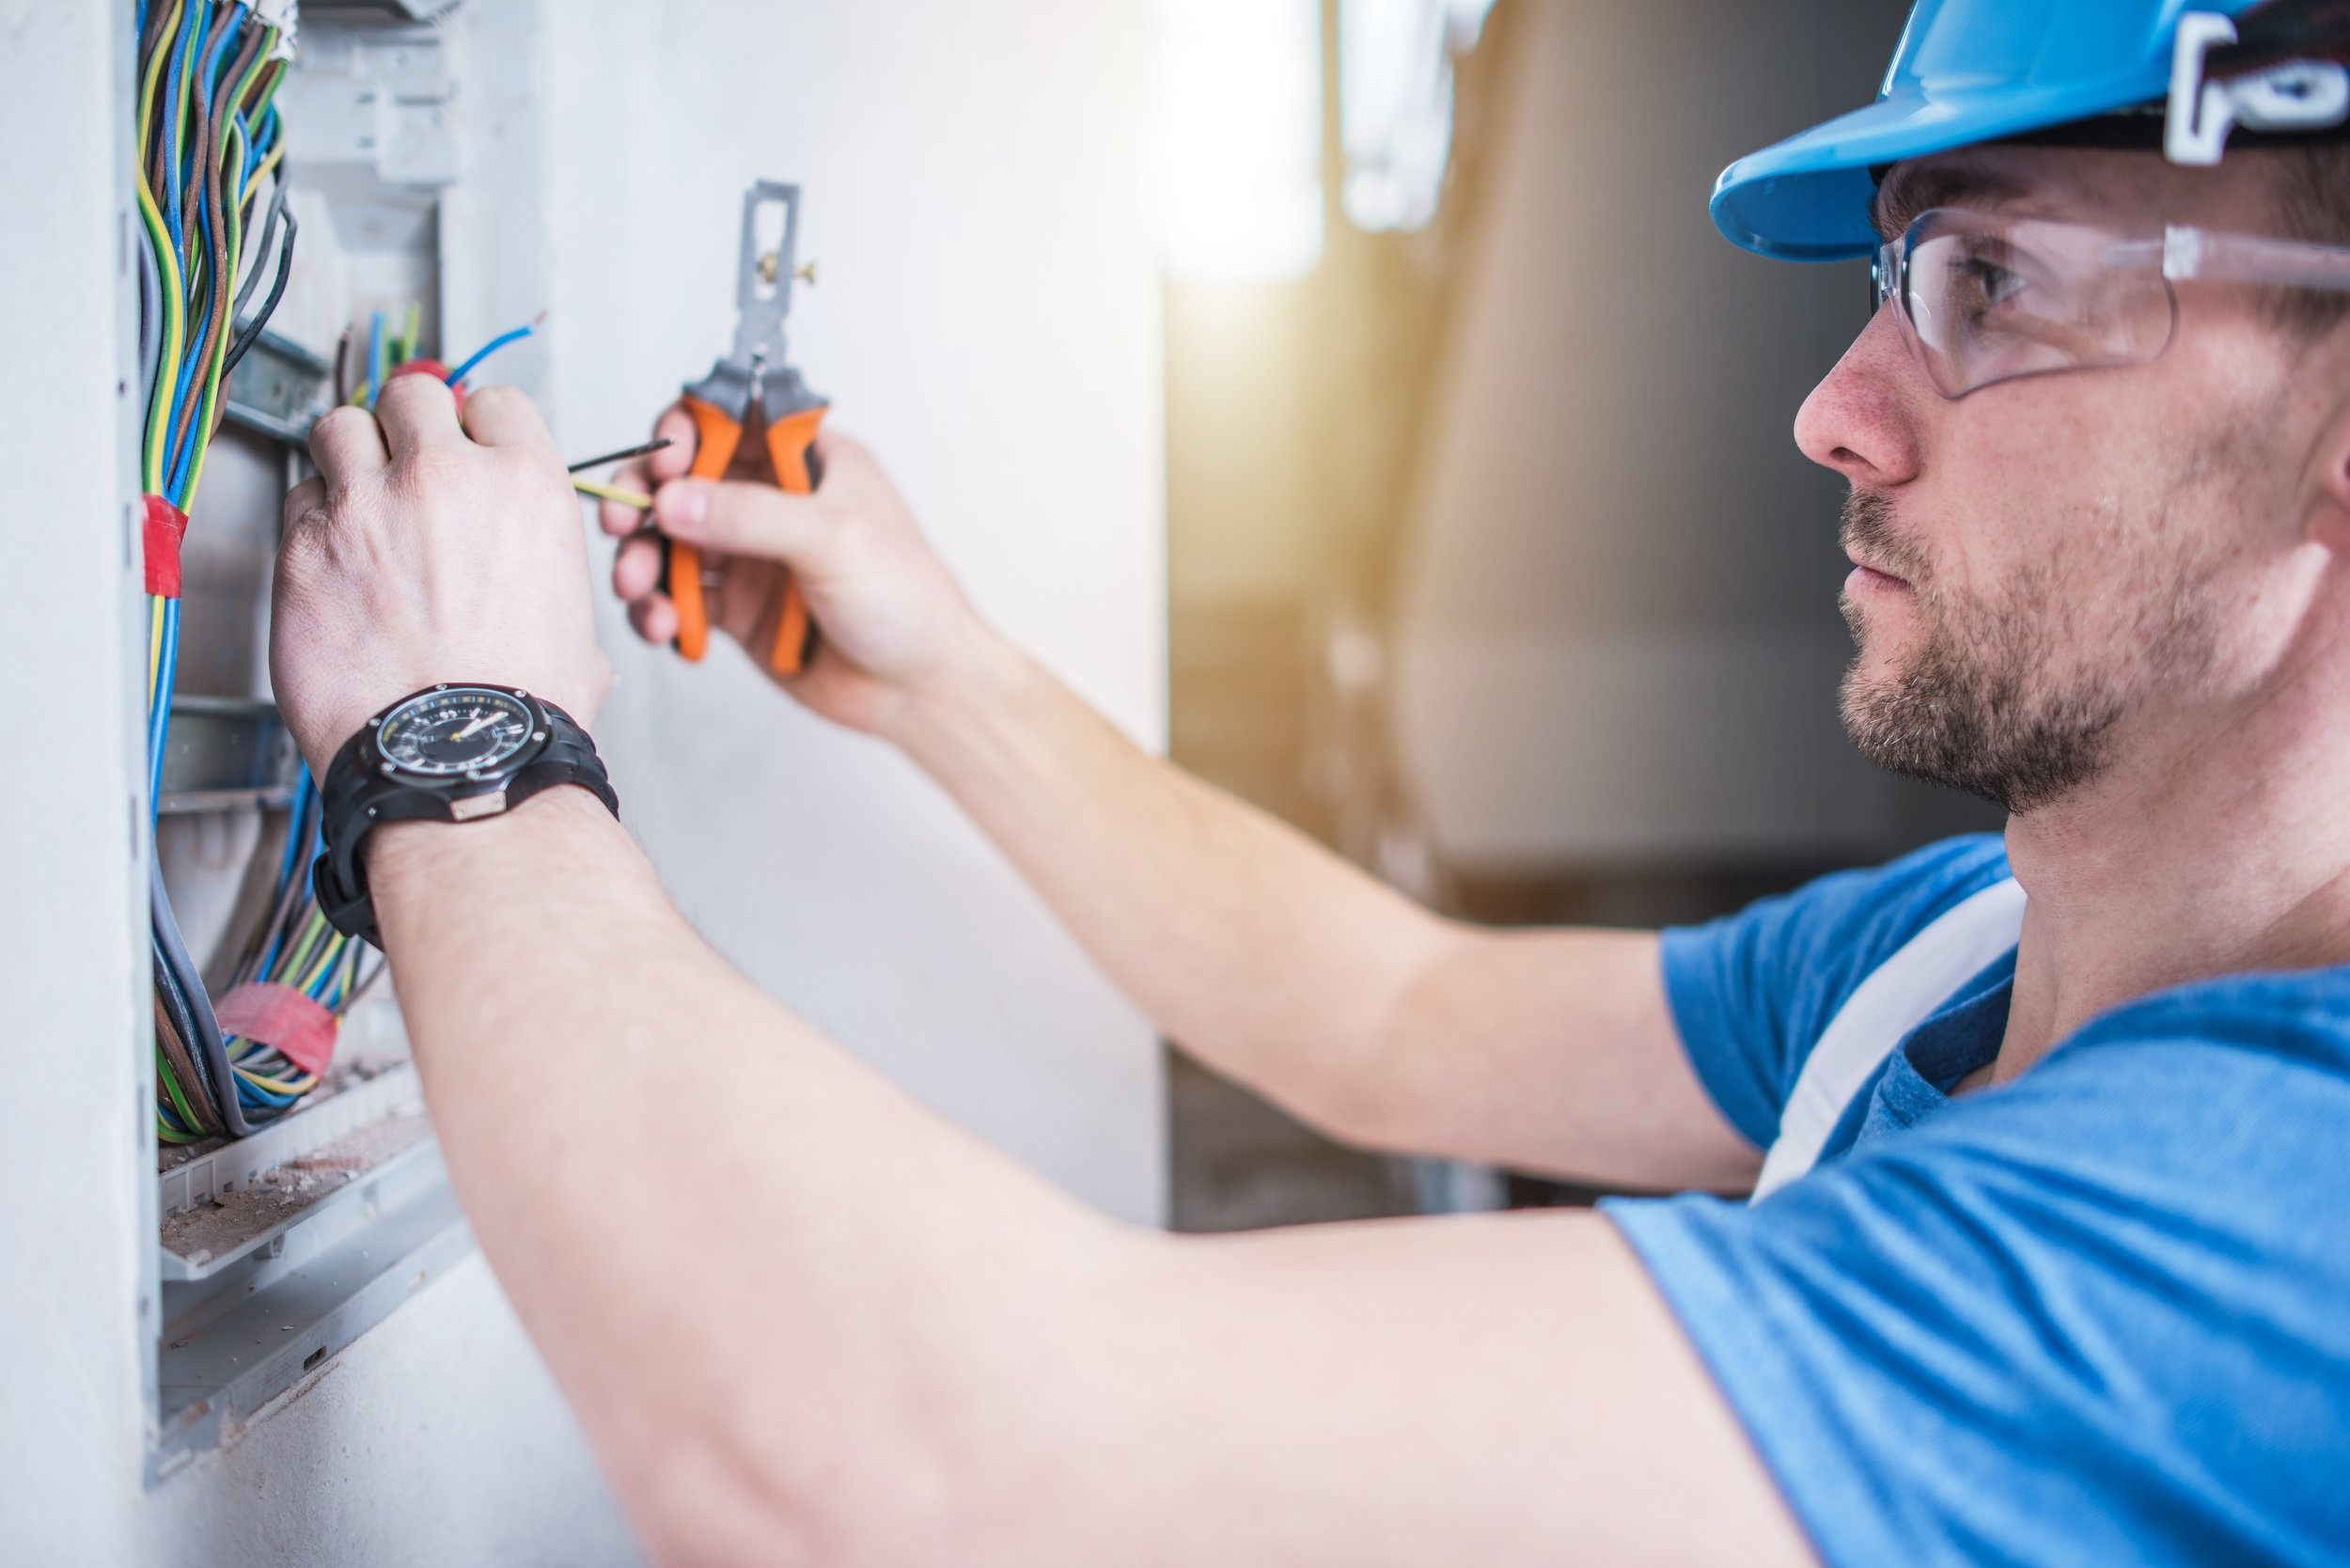 Electrical Services - • Electrical Systems Design and Installation• Lighting Design and Retrofits• CCTV/Card Access/Security Systems• VFD Installation and Repair• Emergency Response Team (24/7)